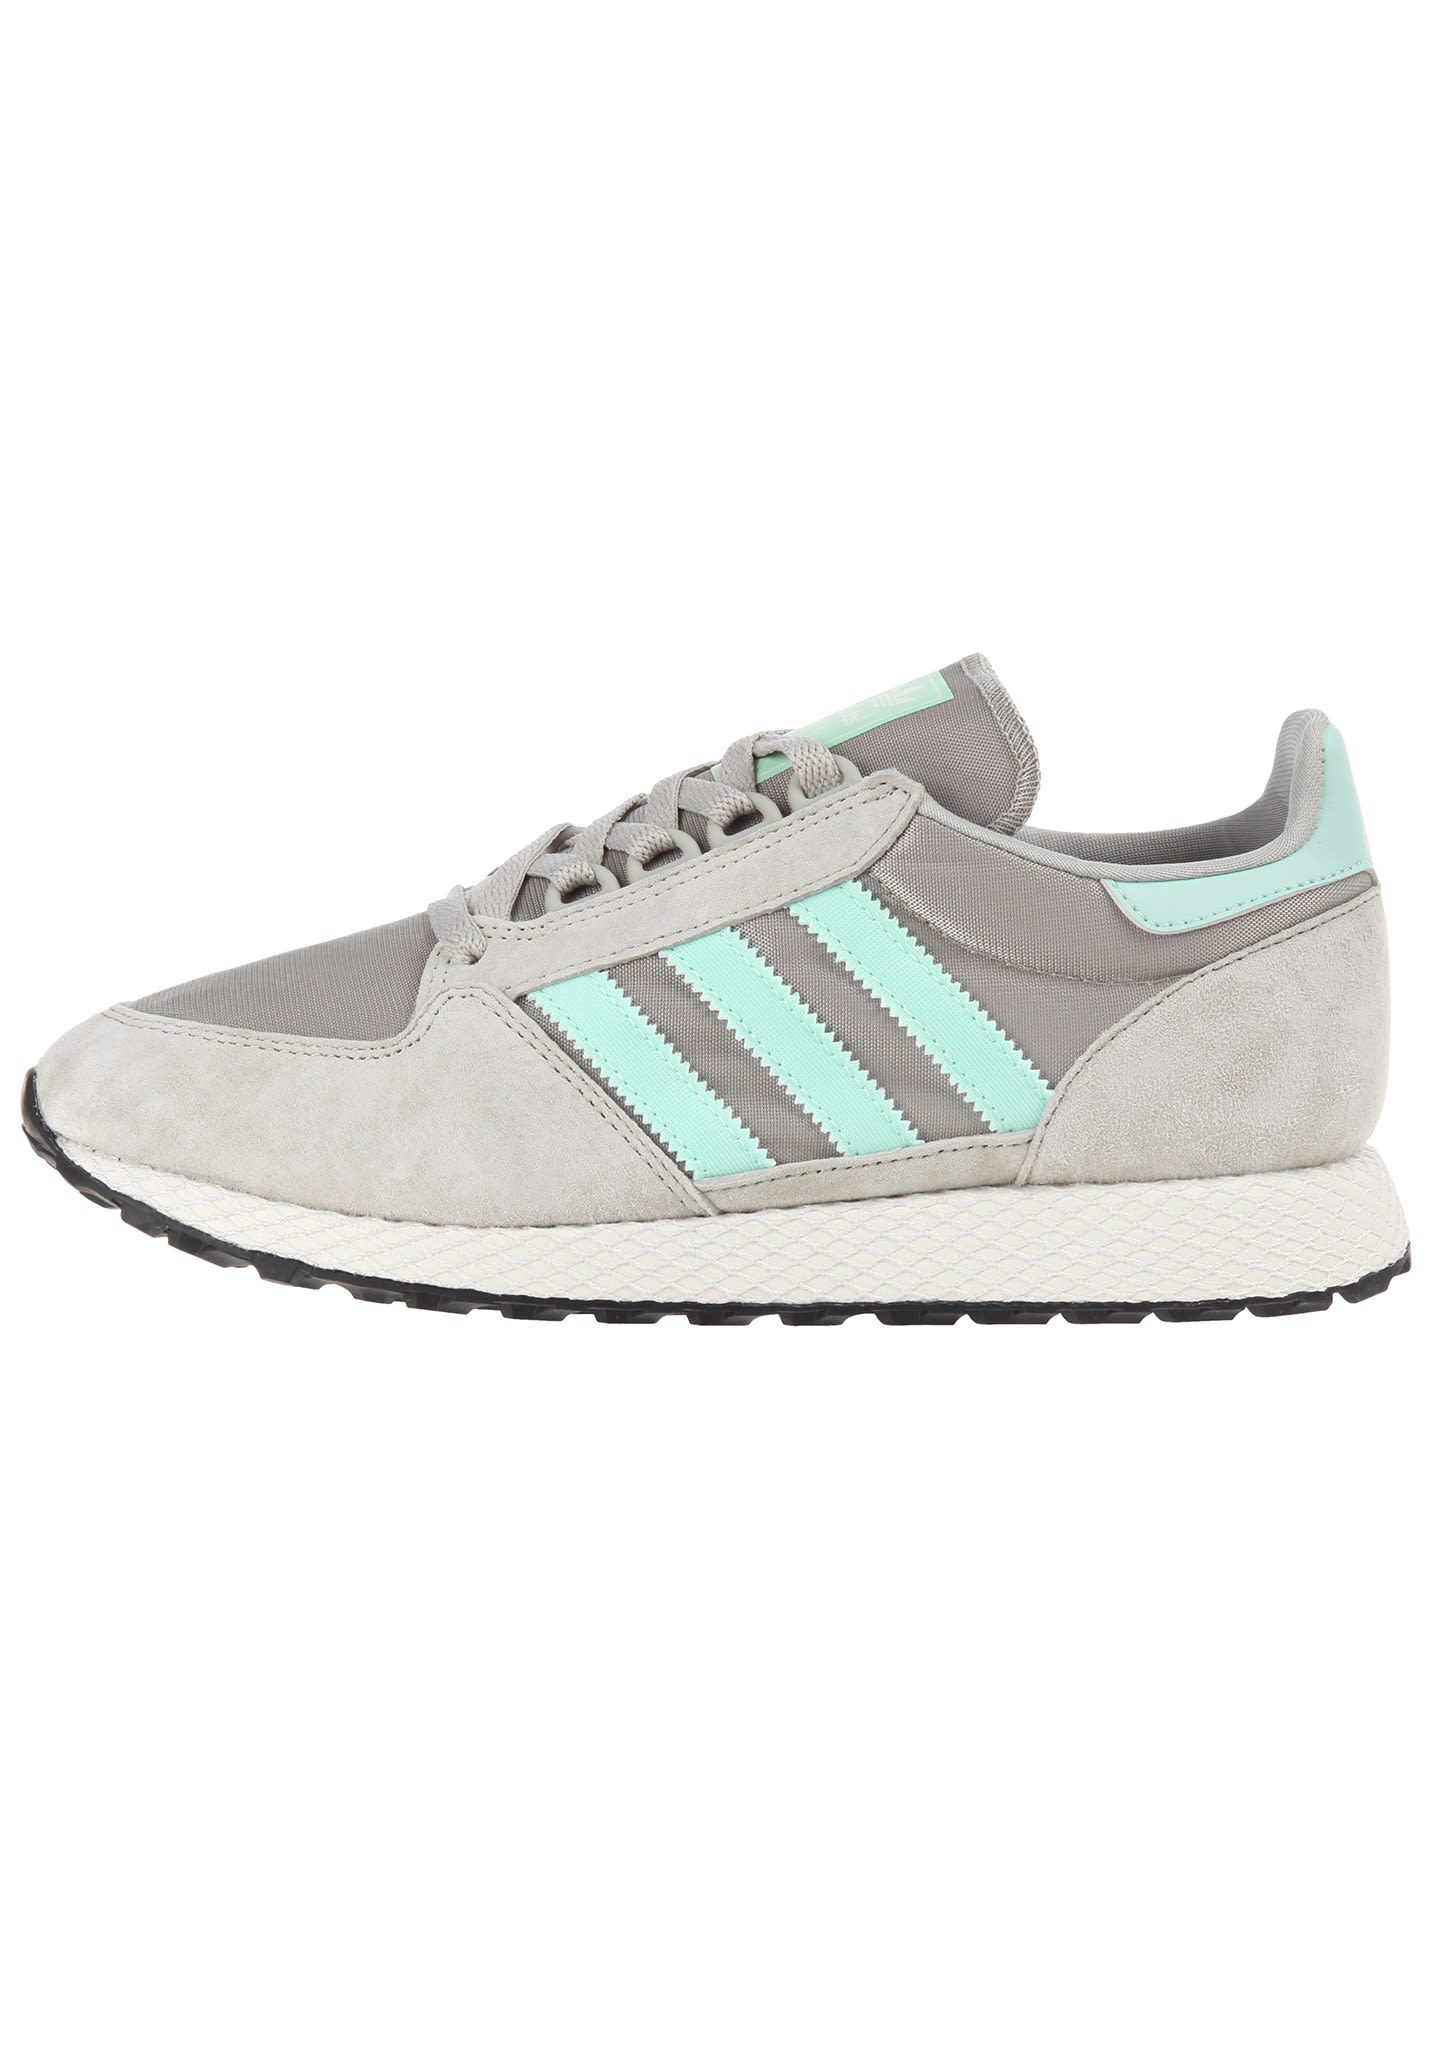 detailed look 7aaeb 84041 ADIDAS ORIGINALS Forest Grove - Sneakers for Women - Grey - Planet Sports